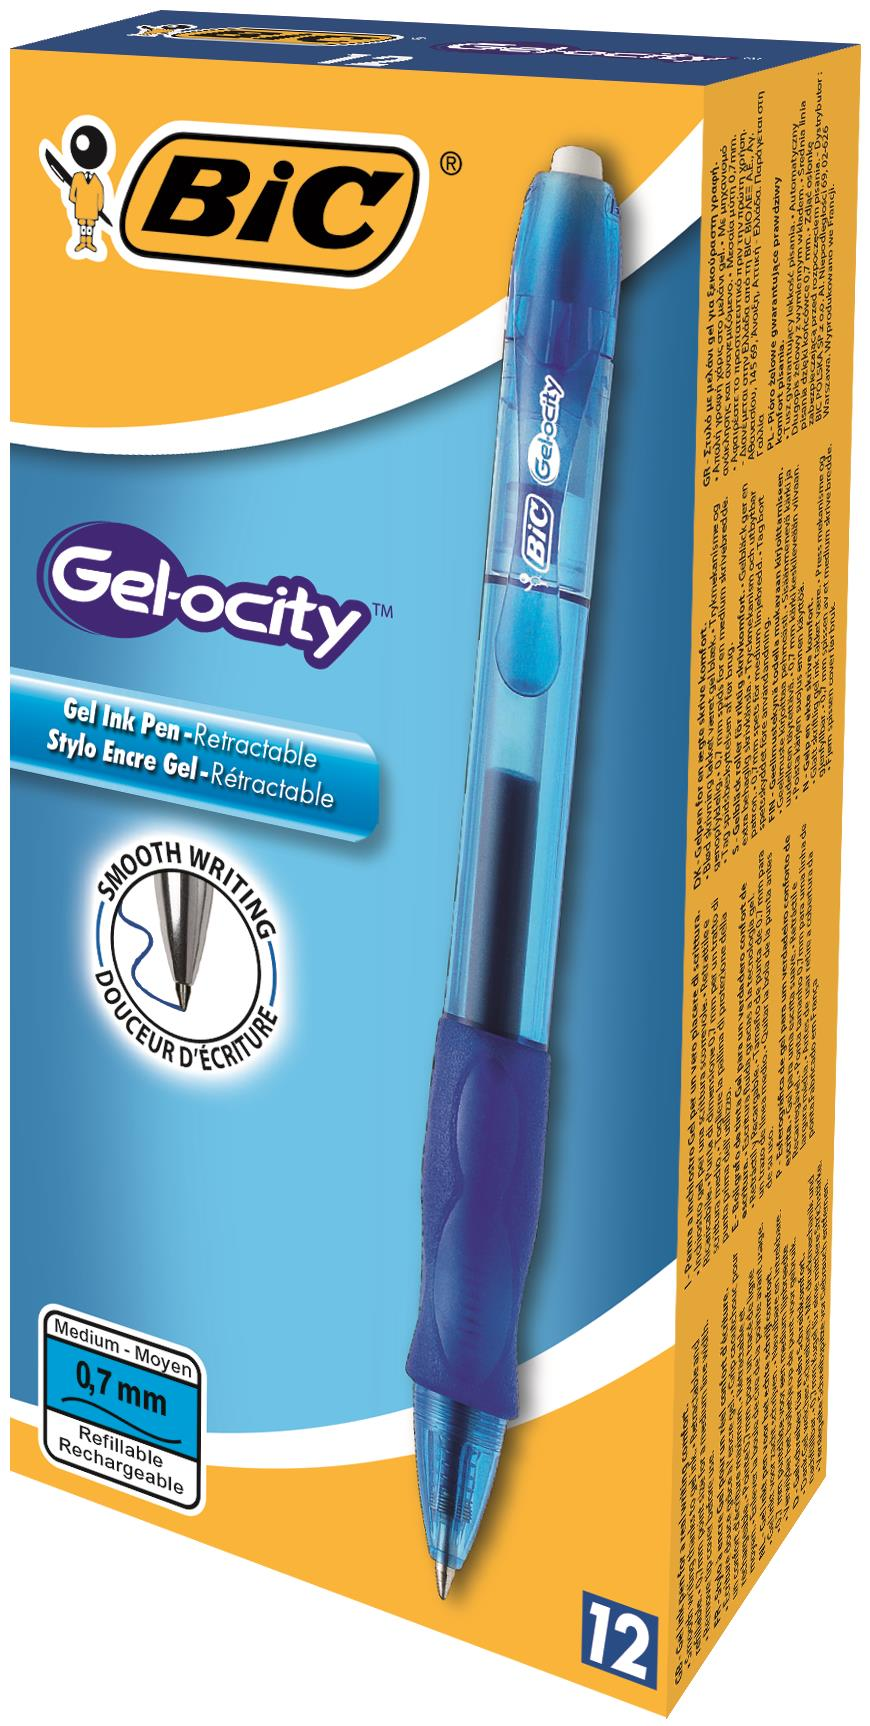 Bic Gelocity Gel Rollerball Pen Retractable Blue Ref 829158 [Pack 12] [FREE Vel Pro Mech Pencil]